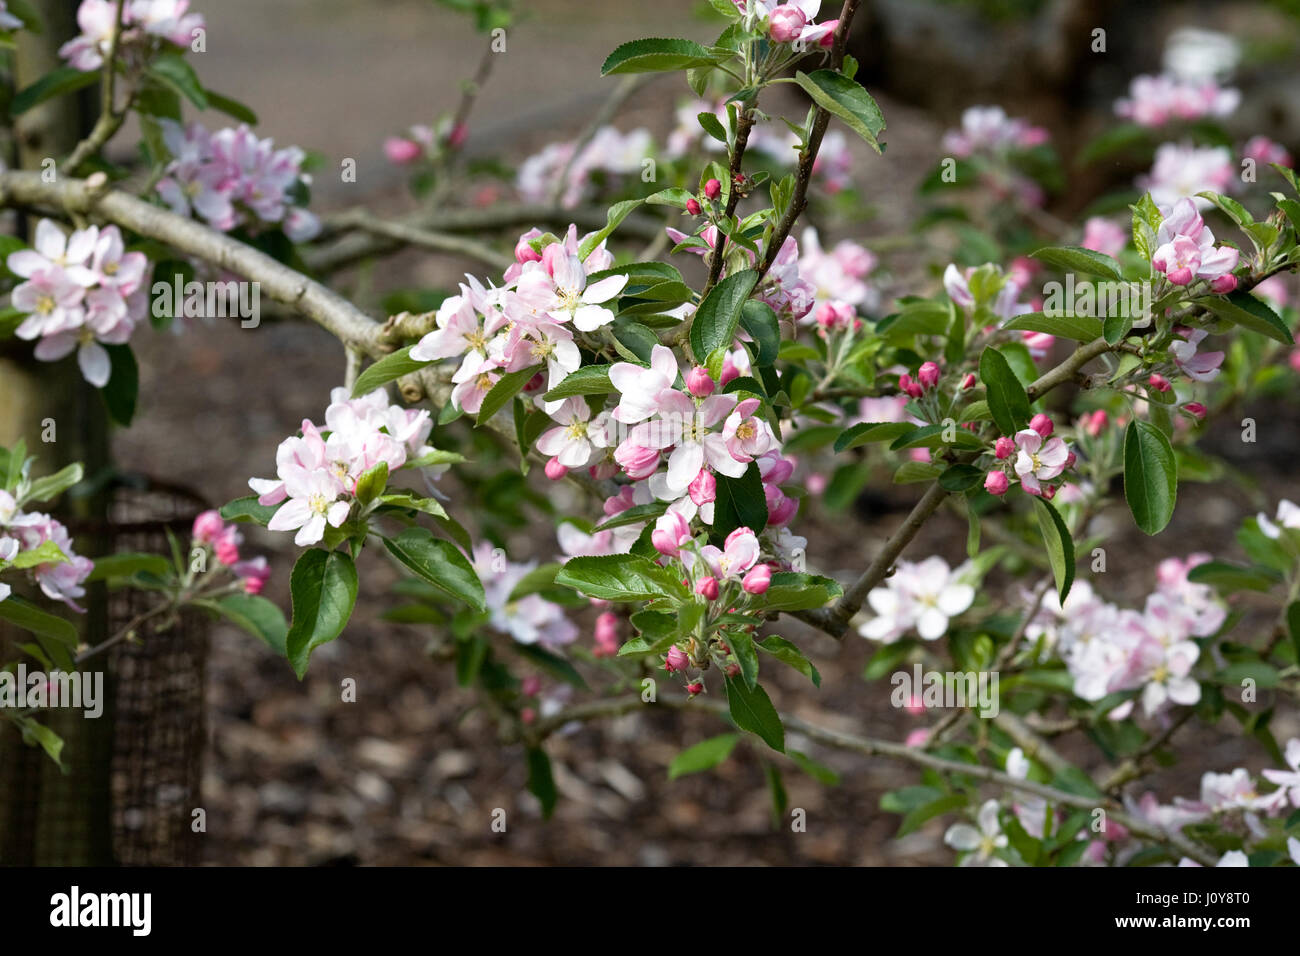 Malus domestica 'Herefordshire Russet' blossom in Spring. - Stock Image